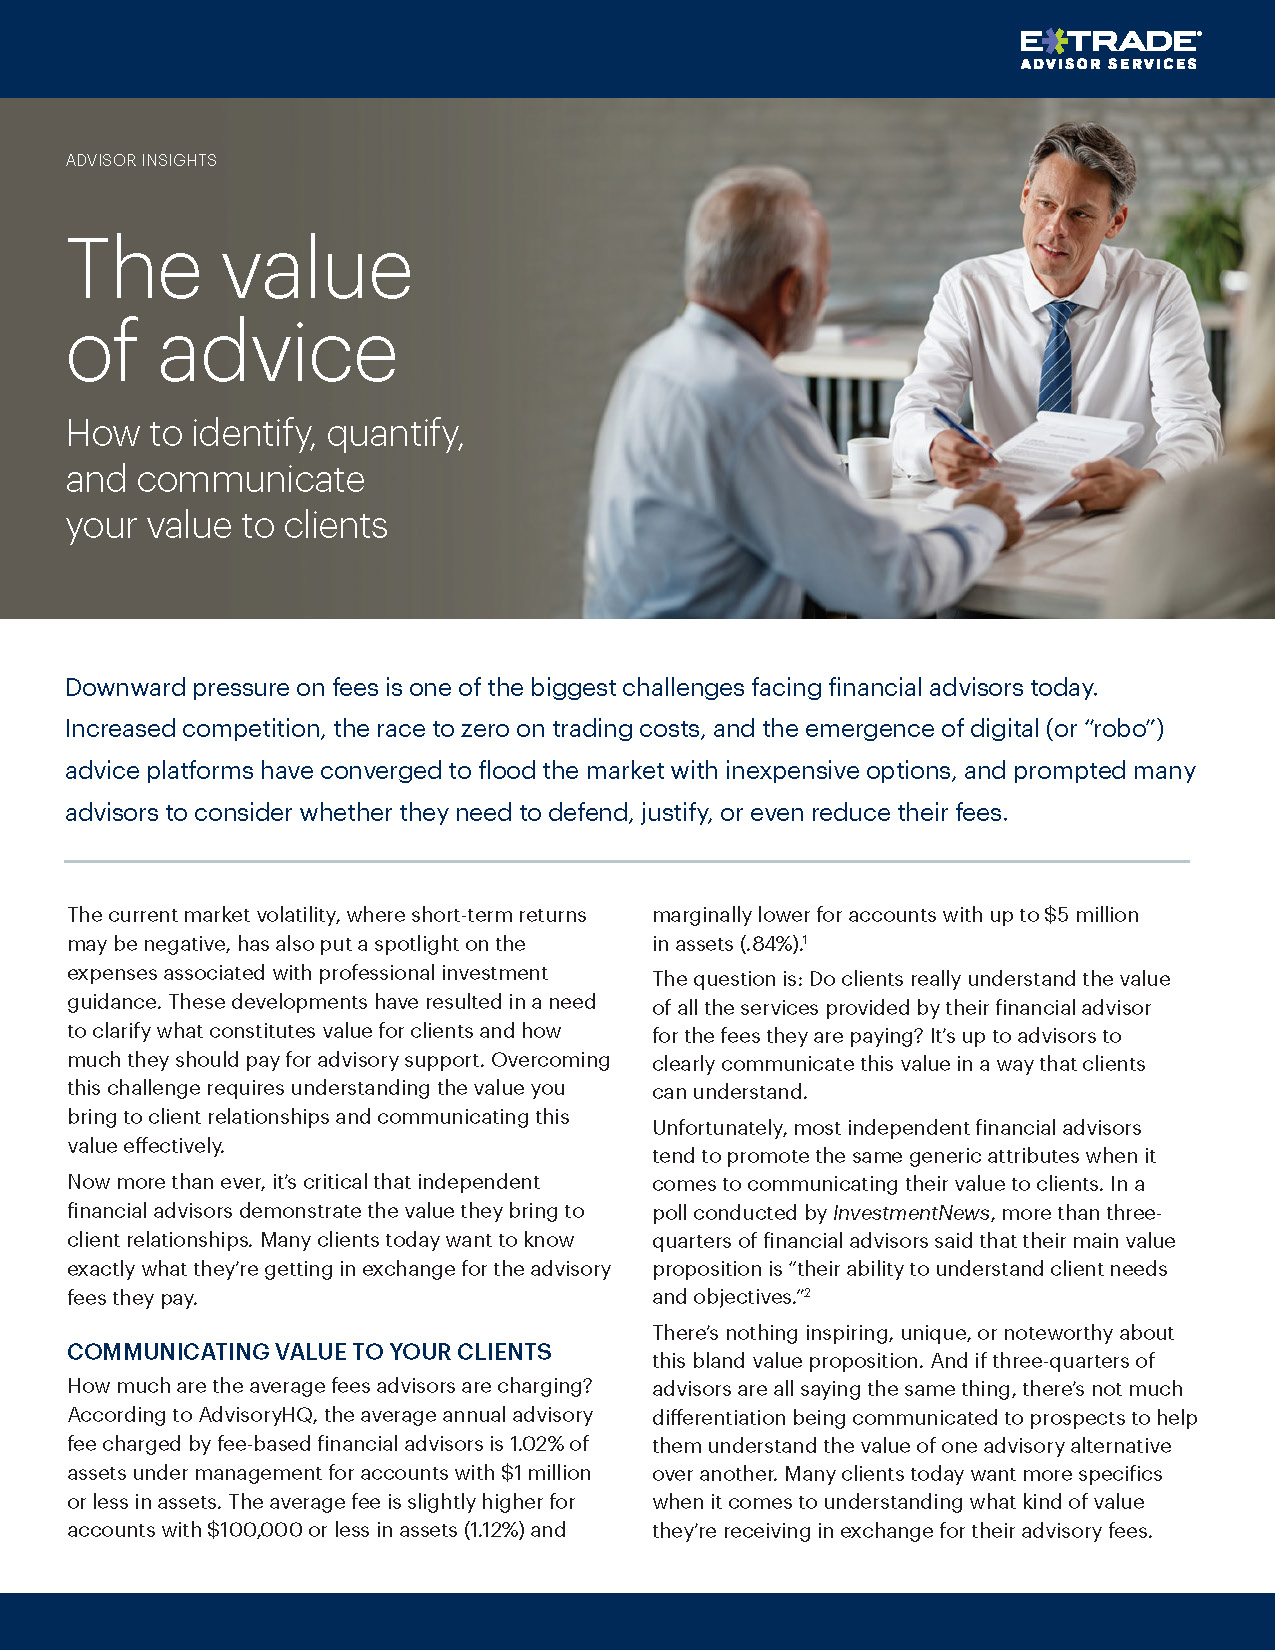 The Value of Advice